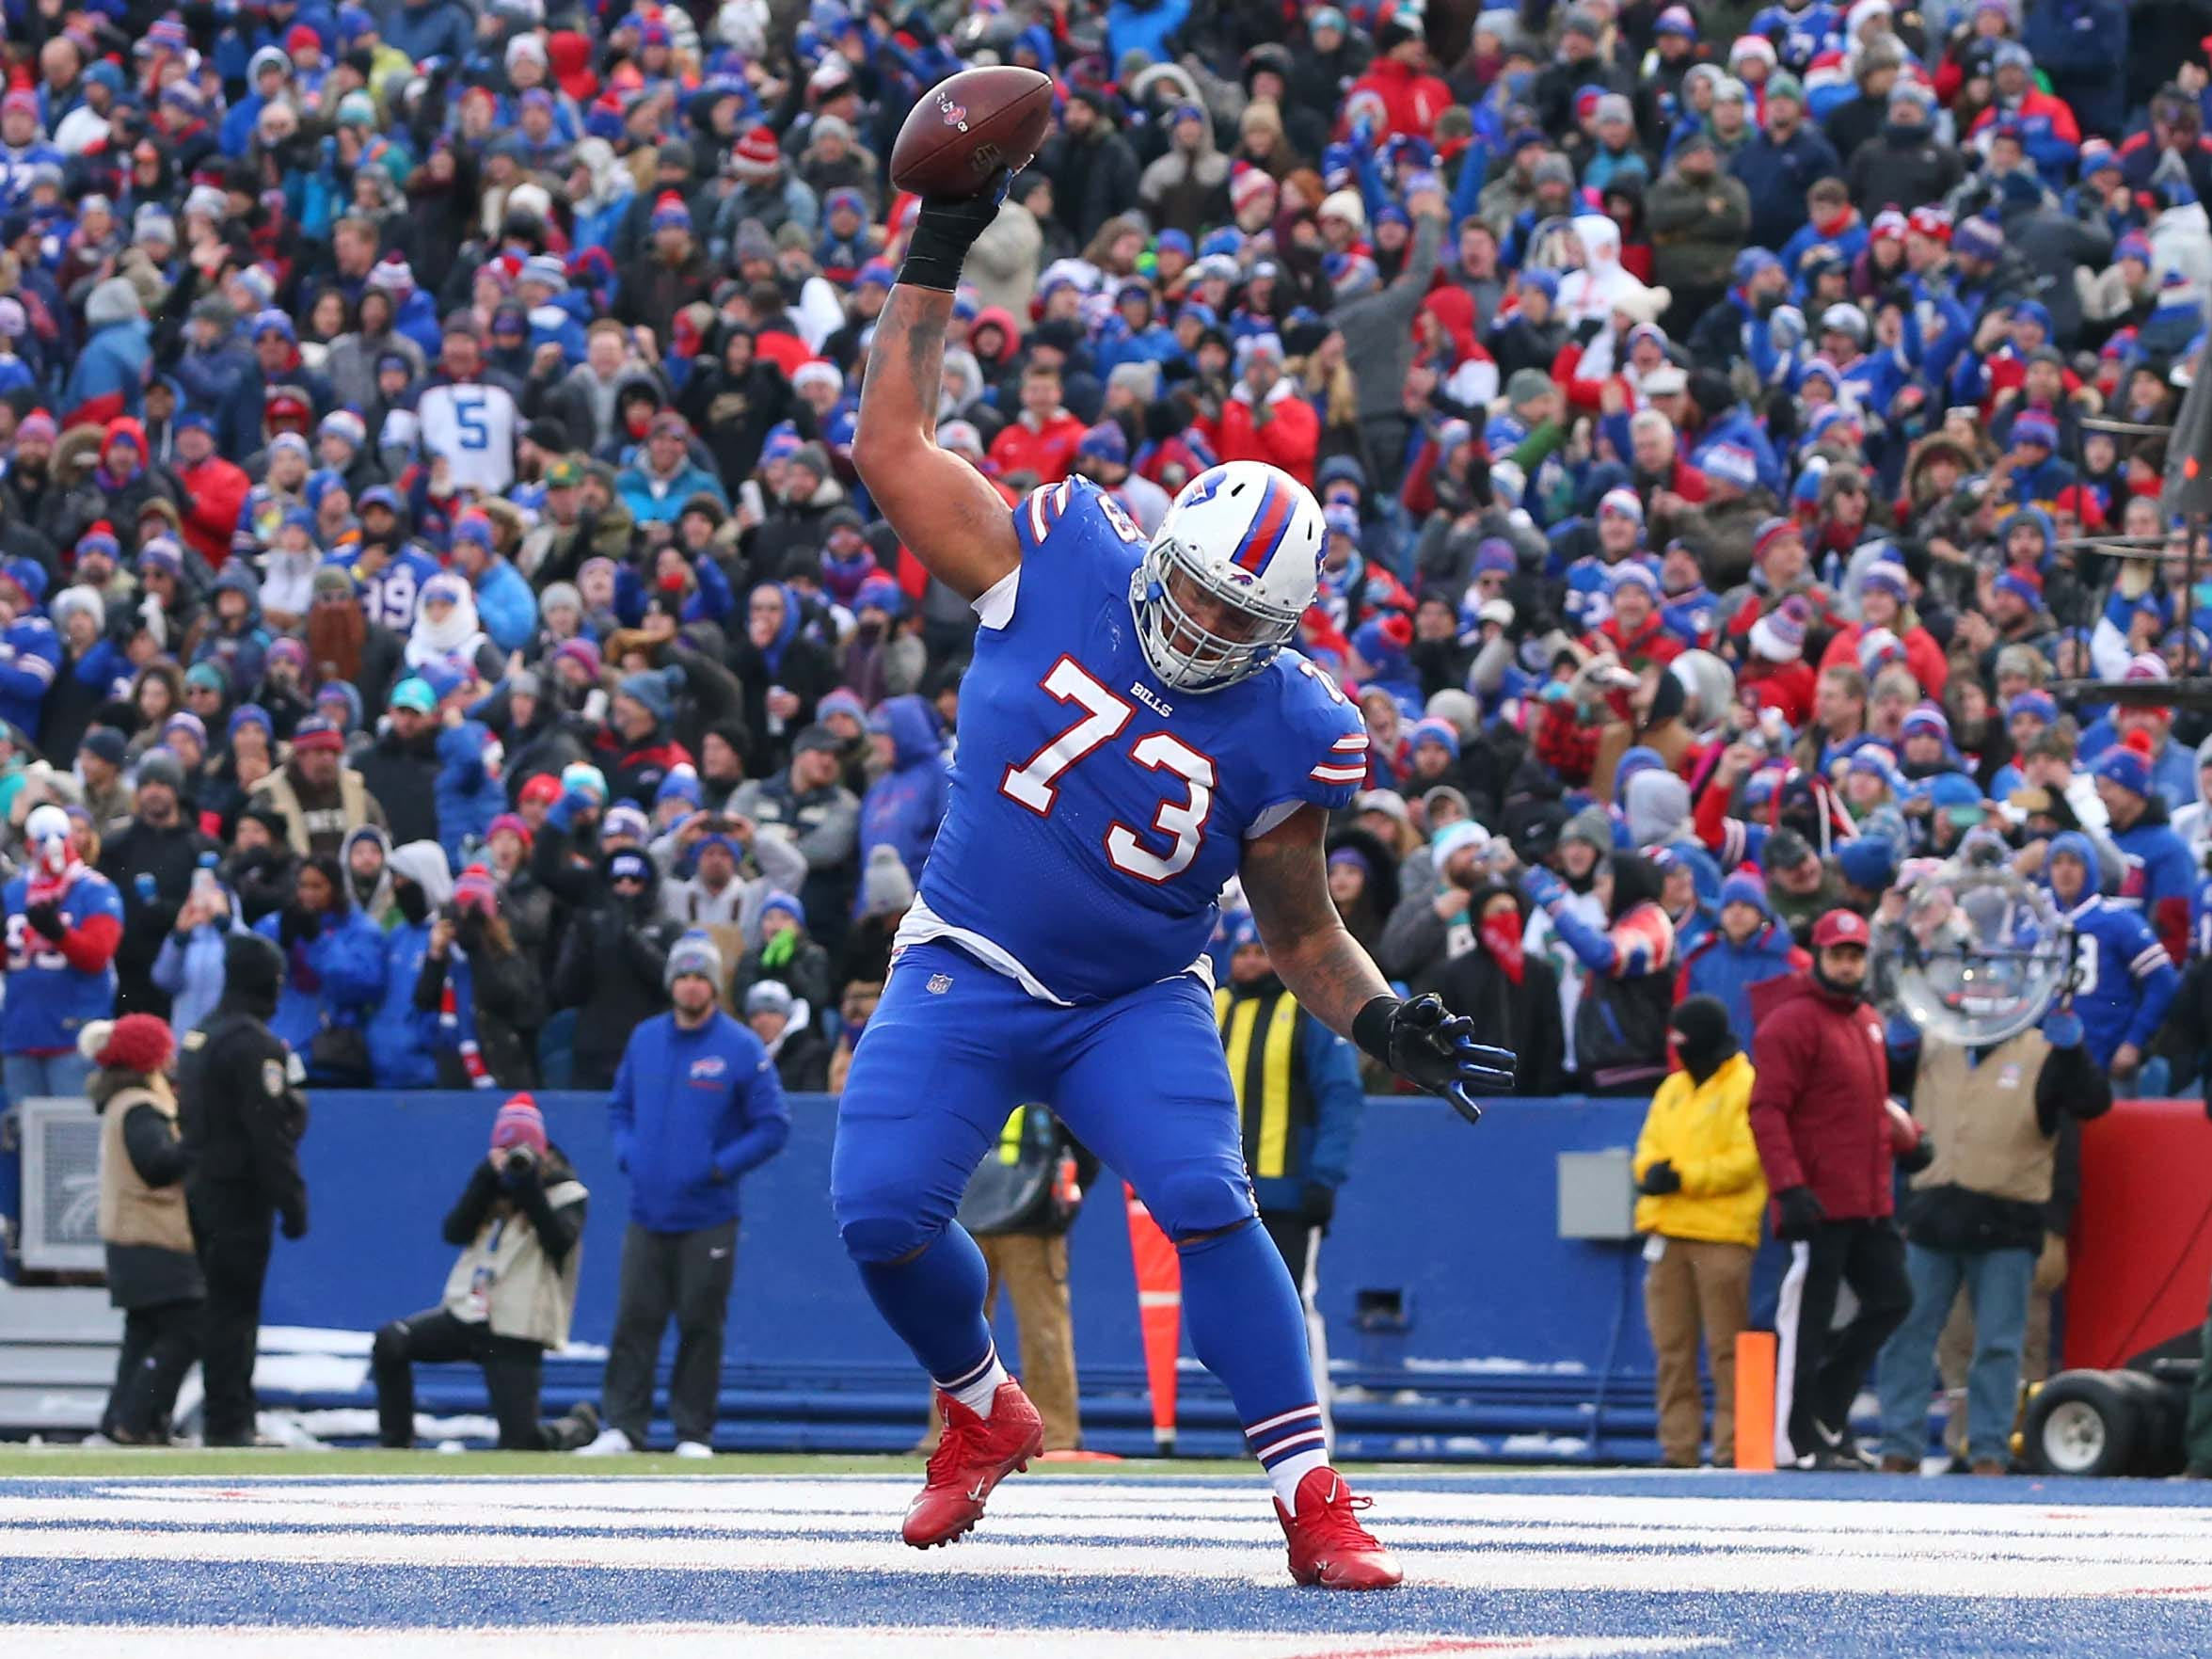 Buffalo Bills offensive tackle Dion Dawkins spikes the ball after a touchdown run by running back LeSean McCoy against the Miami Dolphins during the third quarter at New Era Field.